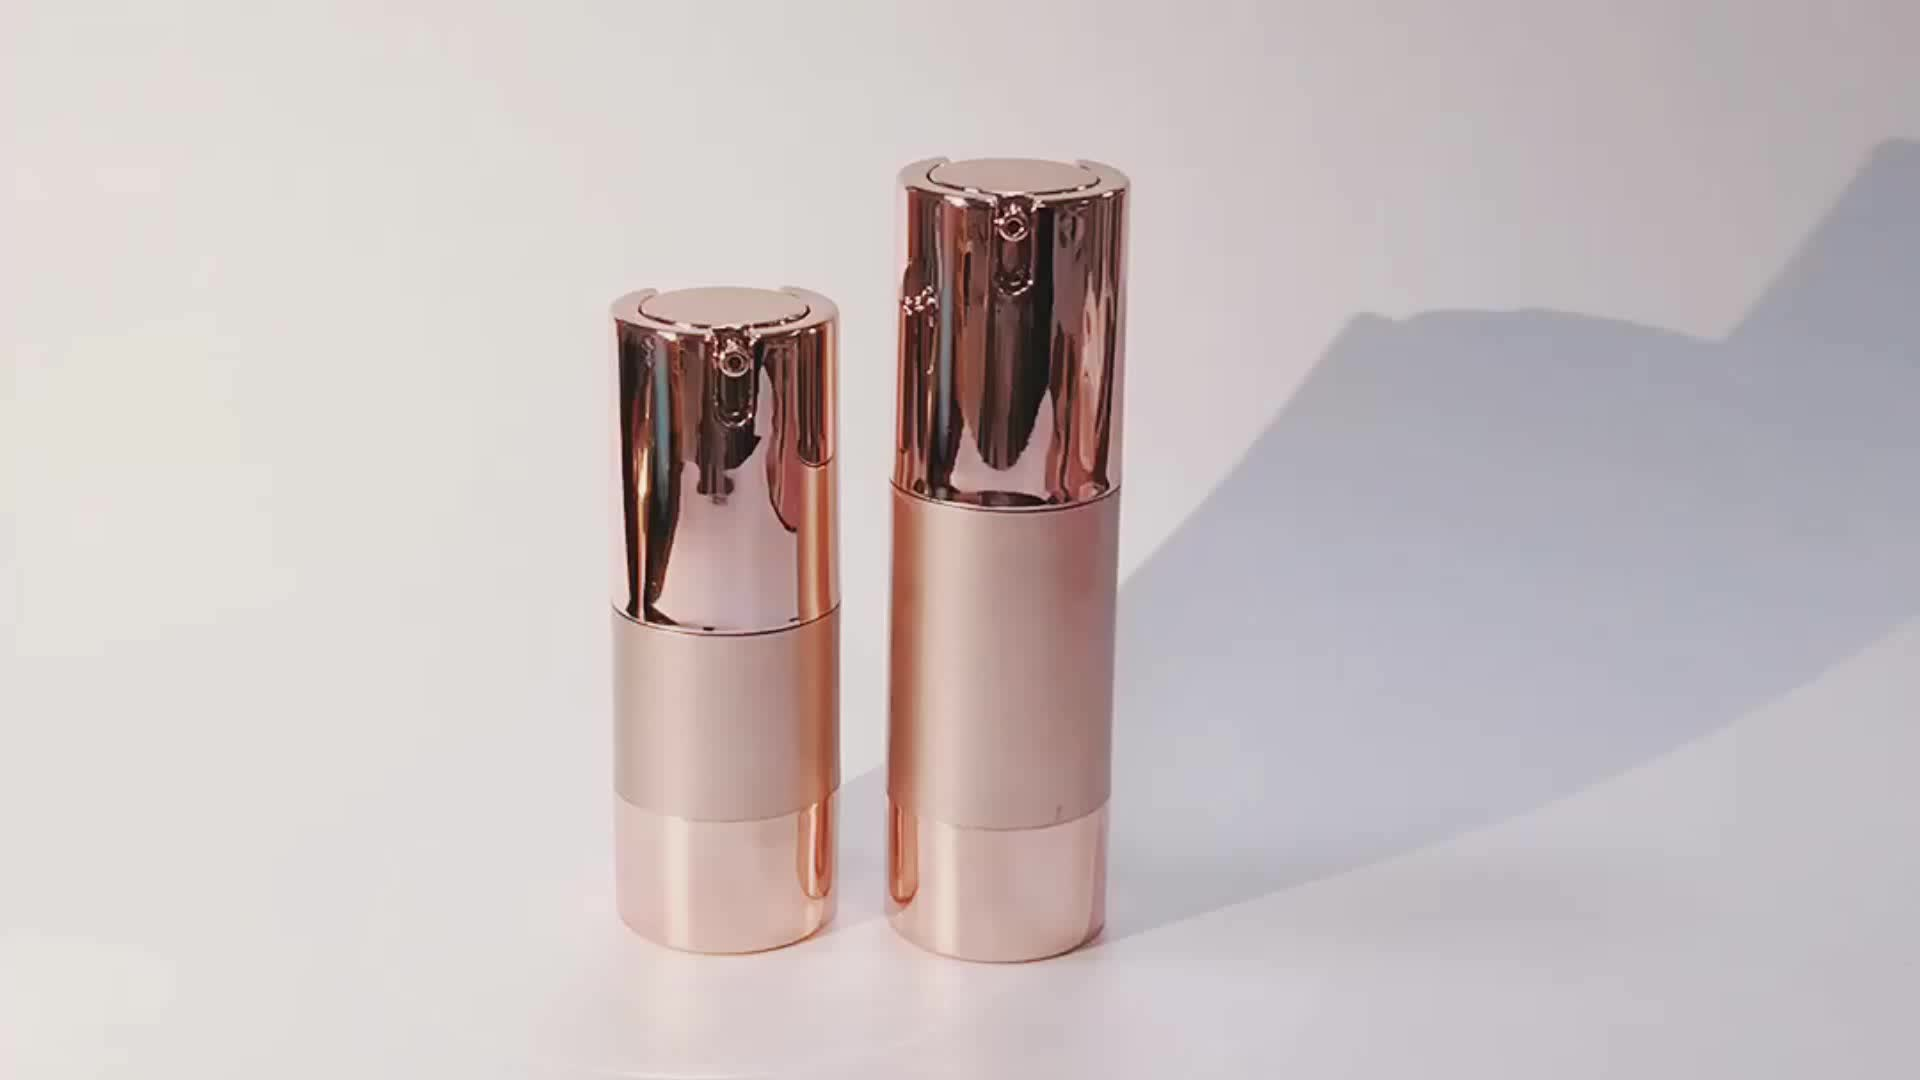 SRS luxe cosmetica 50 ml rose gold airless pomp fles